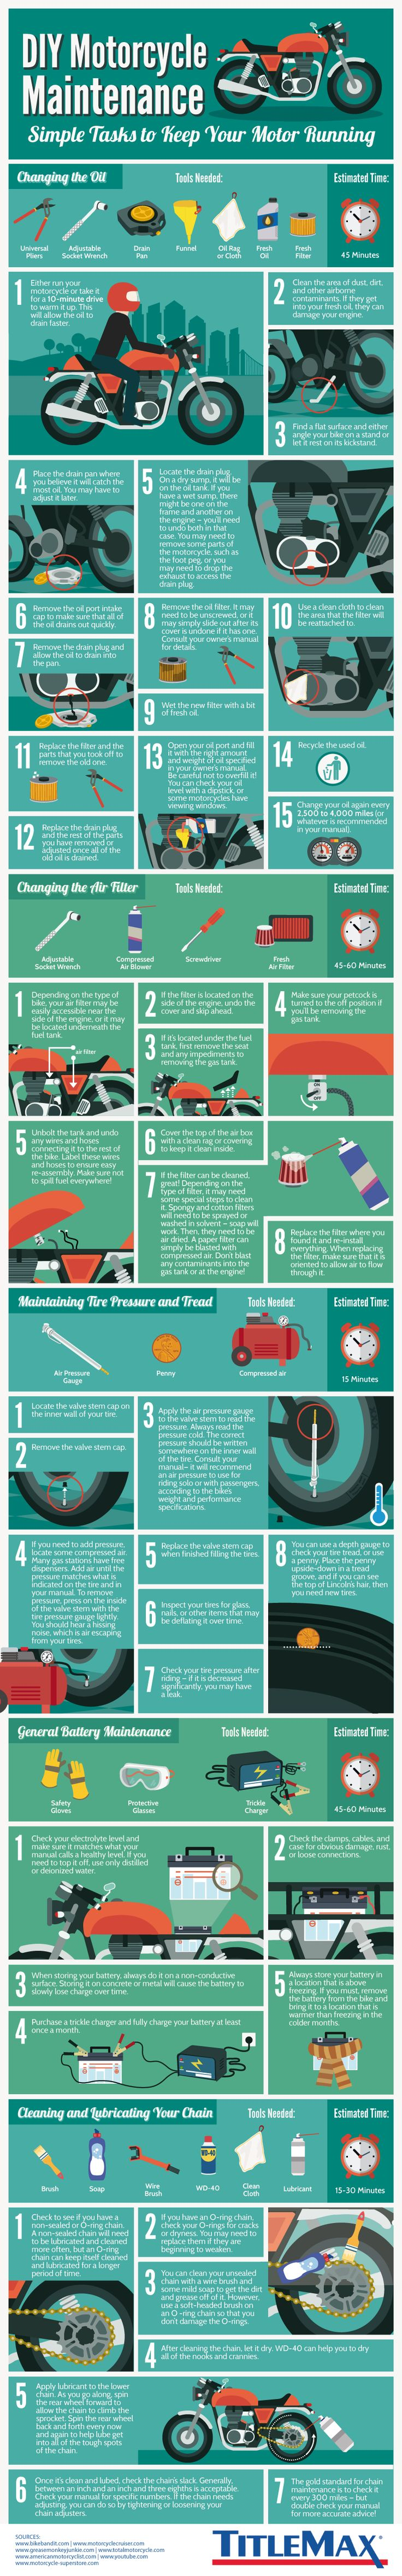 DIY Motorcycle Maintenance - TitleMax.com - Infographic